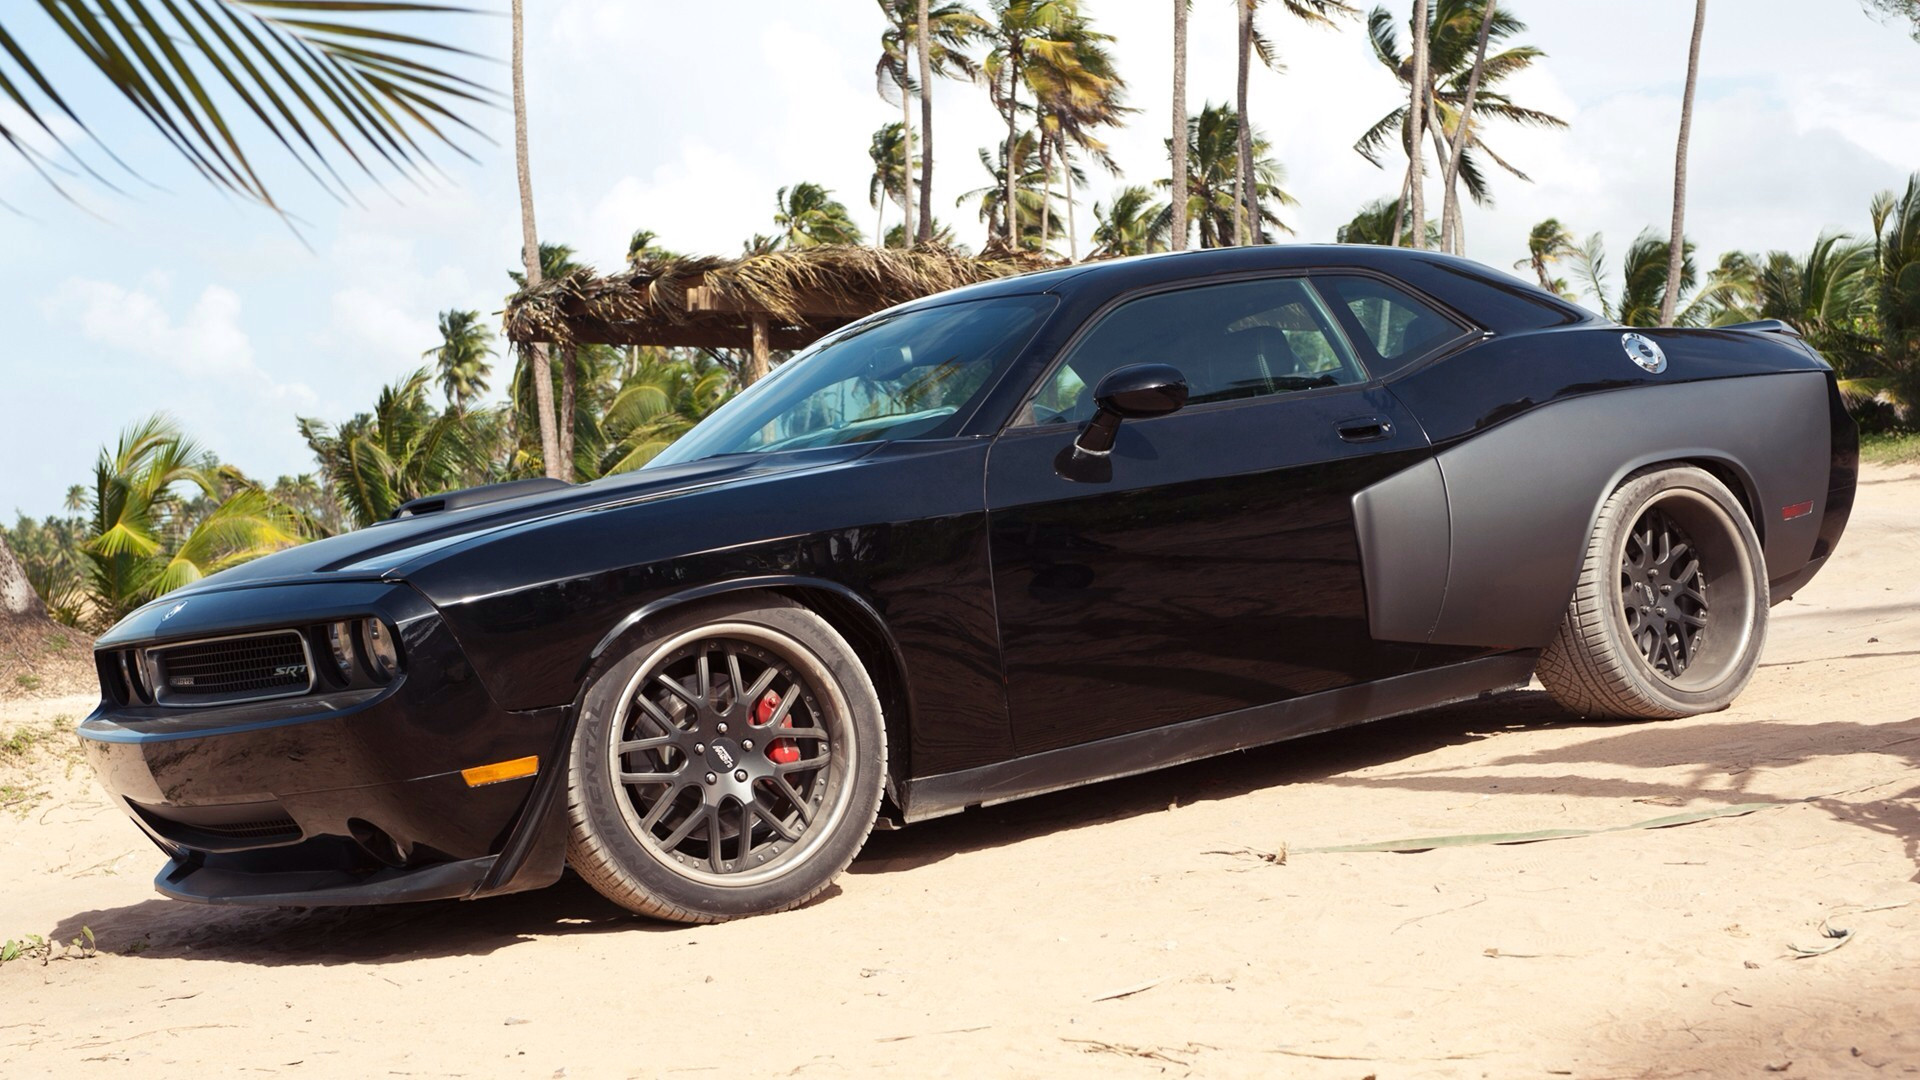 Dodge Dodge Challenger R/T Dodge Challenger SRT Fast and Furious